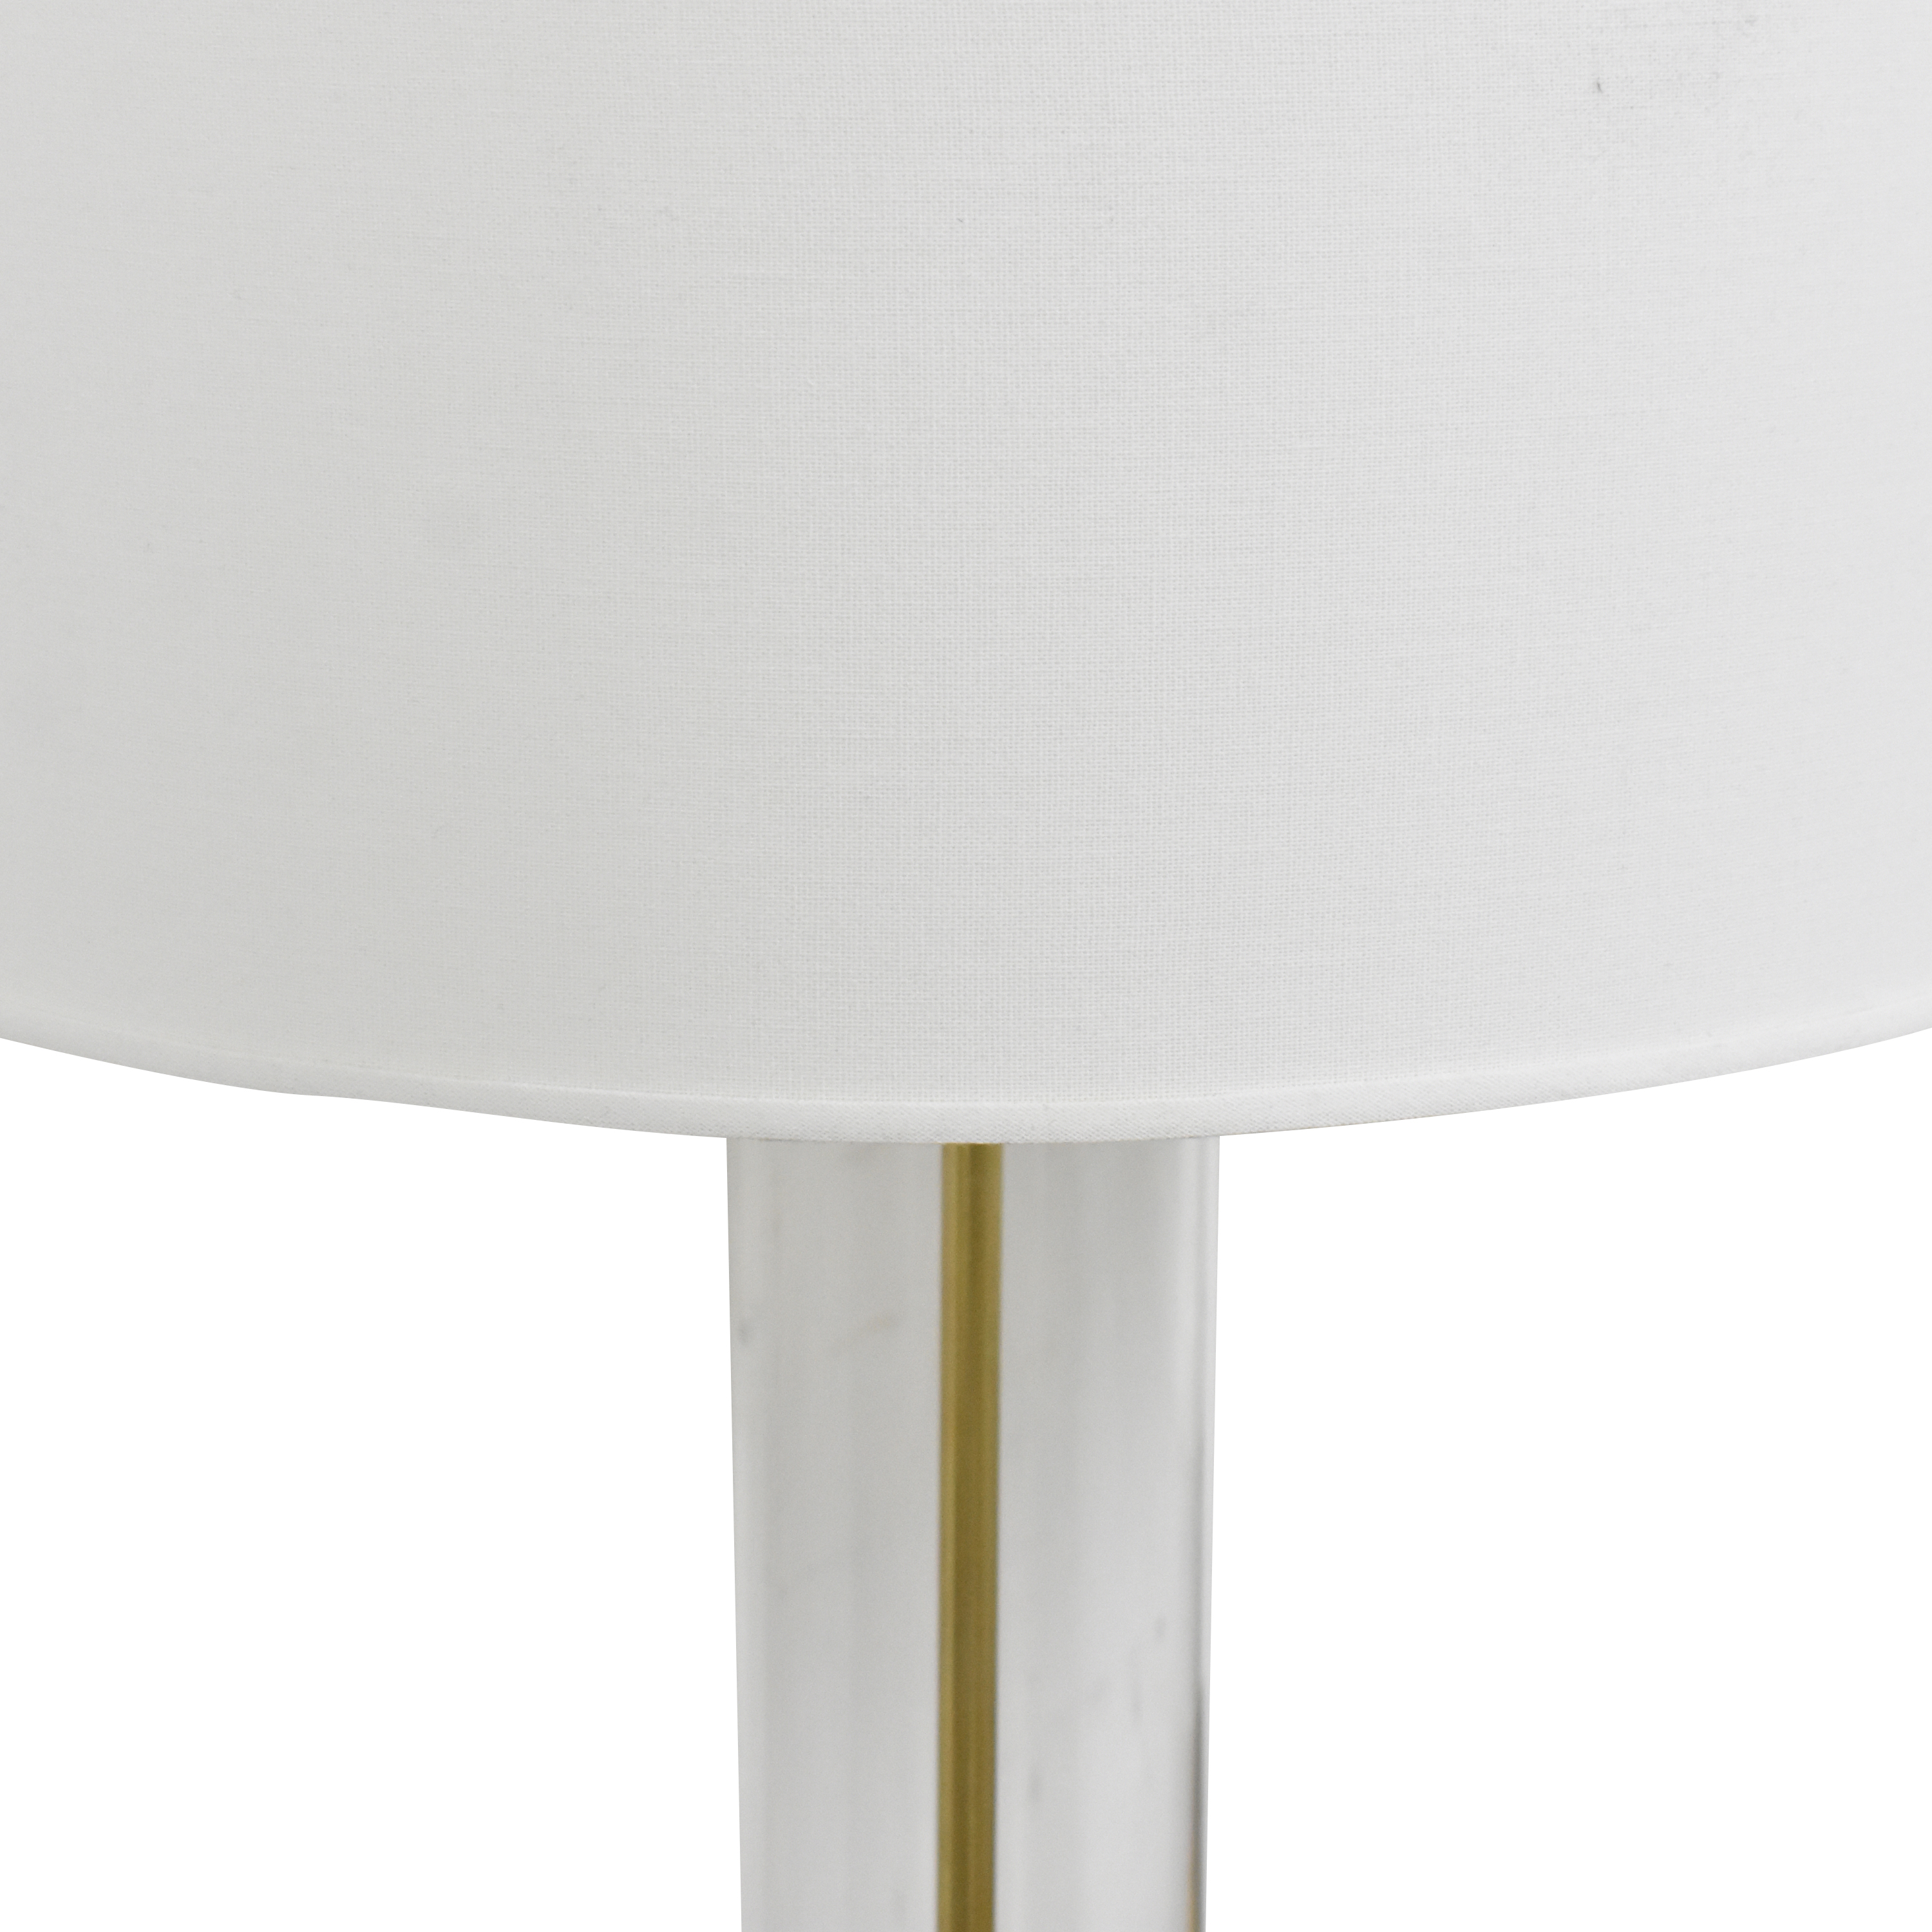 Serena & Lily Serena & Lily Hyde Park Table Lamps  for sale